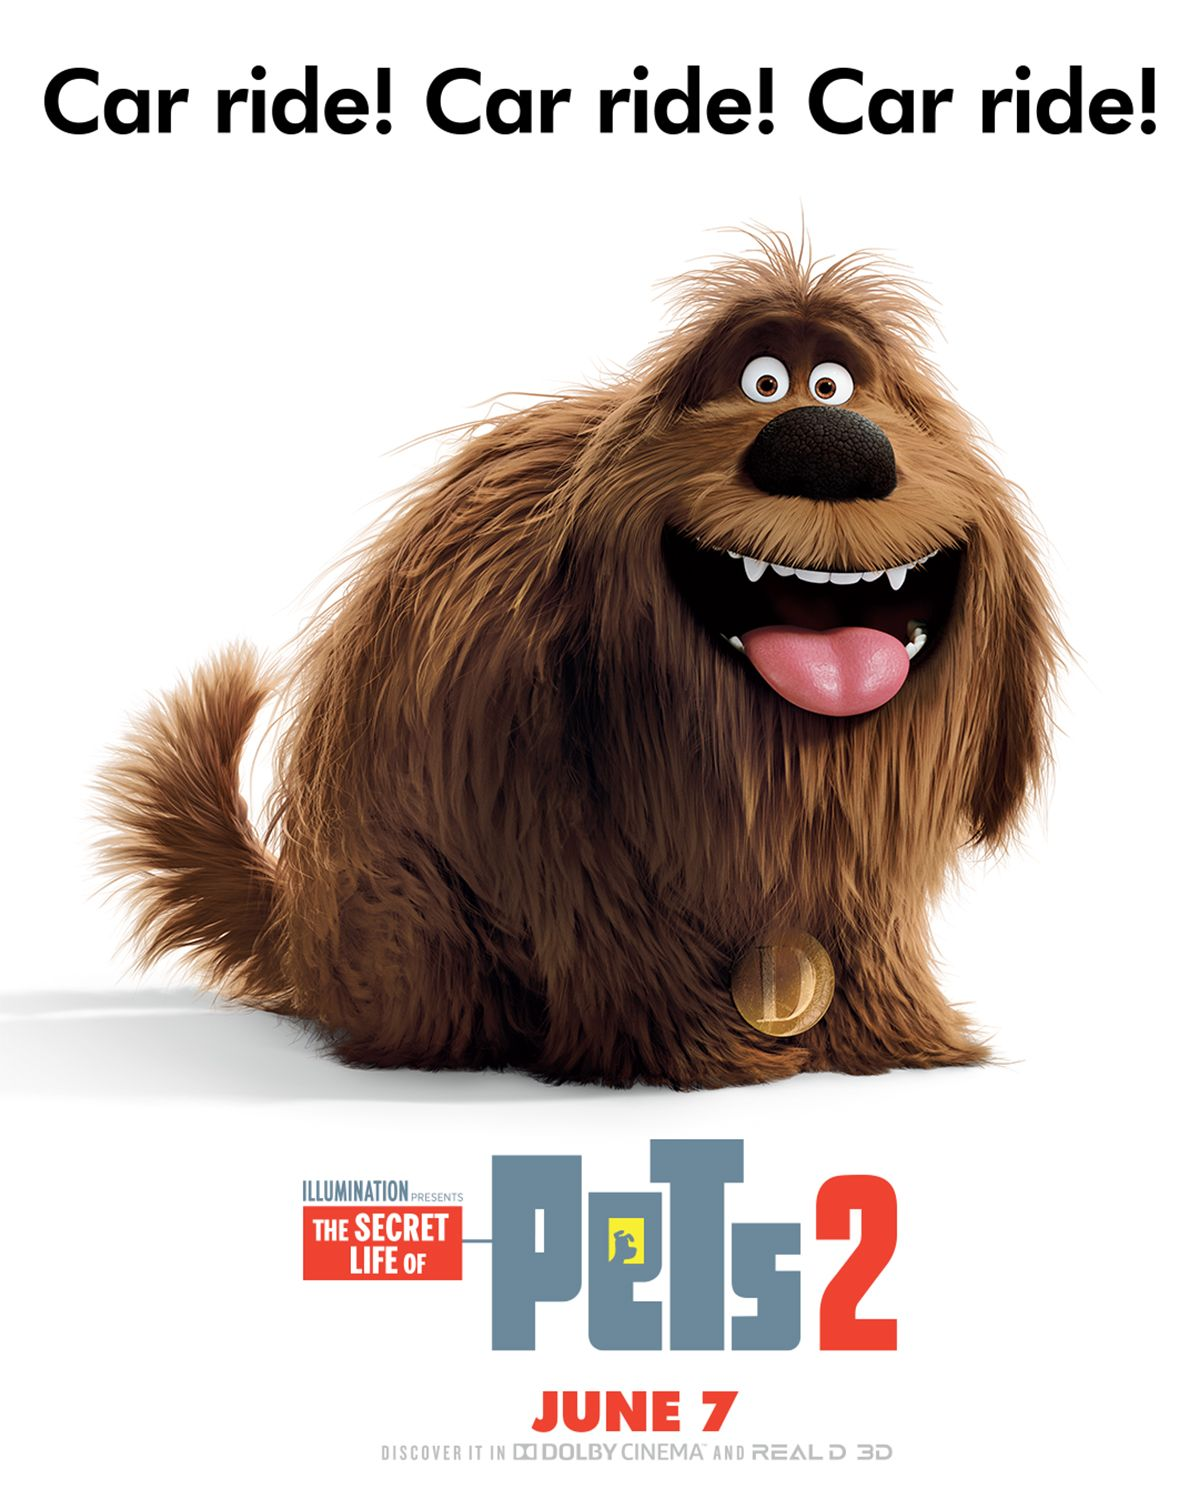 Eric Stonestreet Is Duke The Pets Return This Summer In The New Movie The Secret Life Of Pets 2 Coming To Theater Secret Life Of Pets Secret Life The Secret